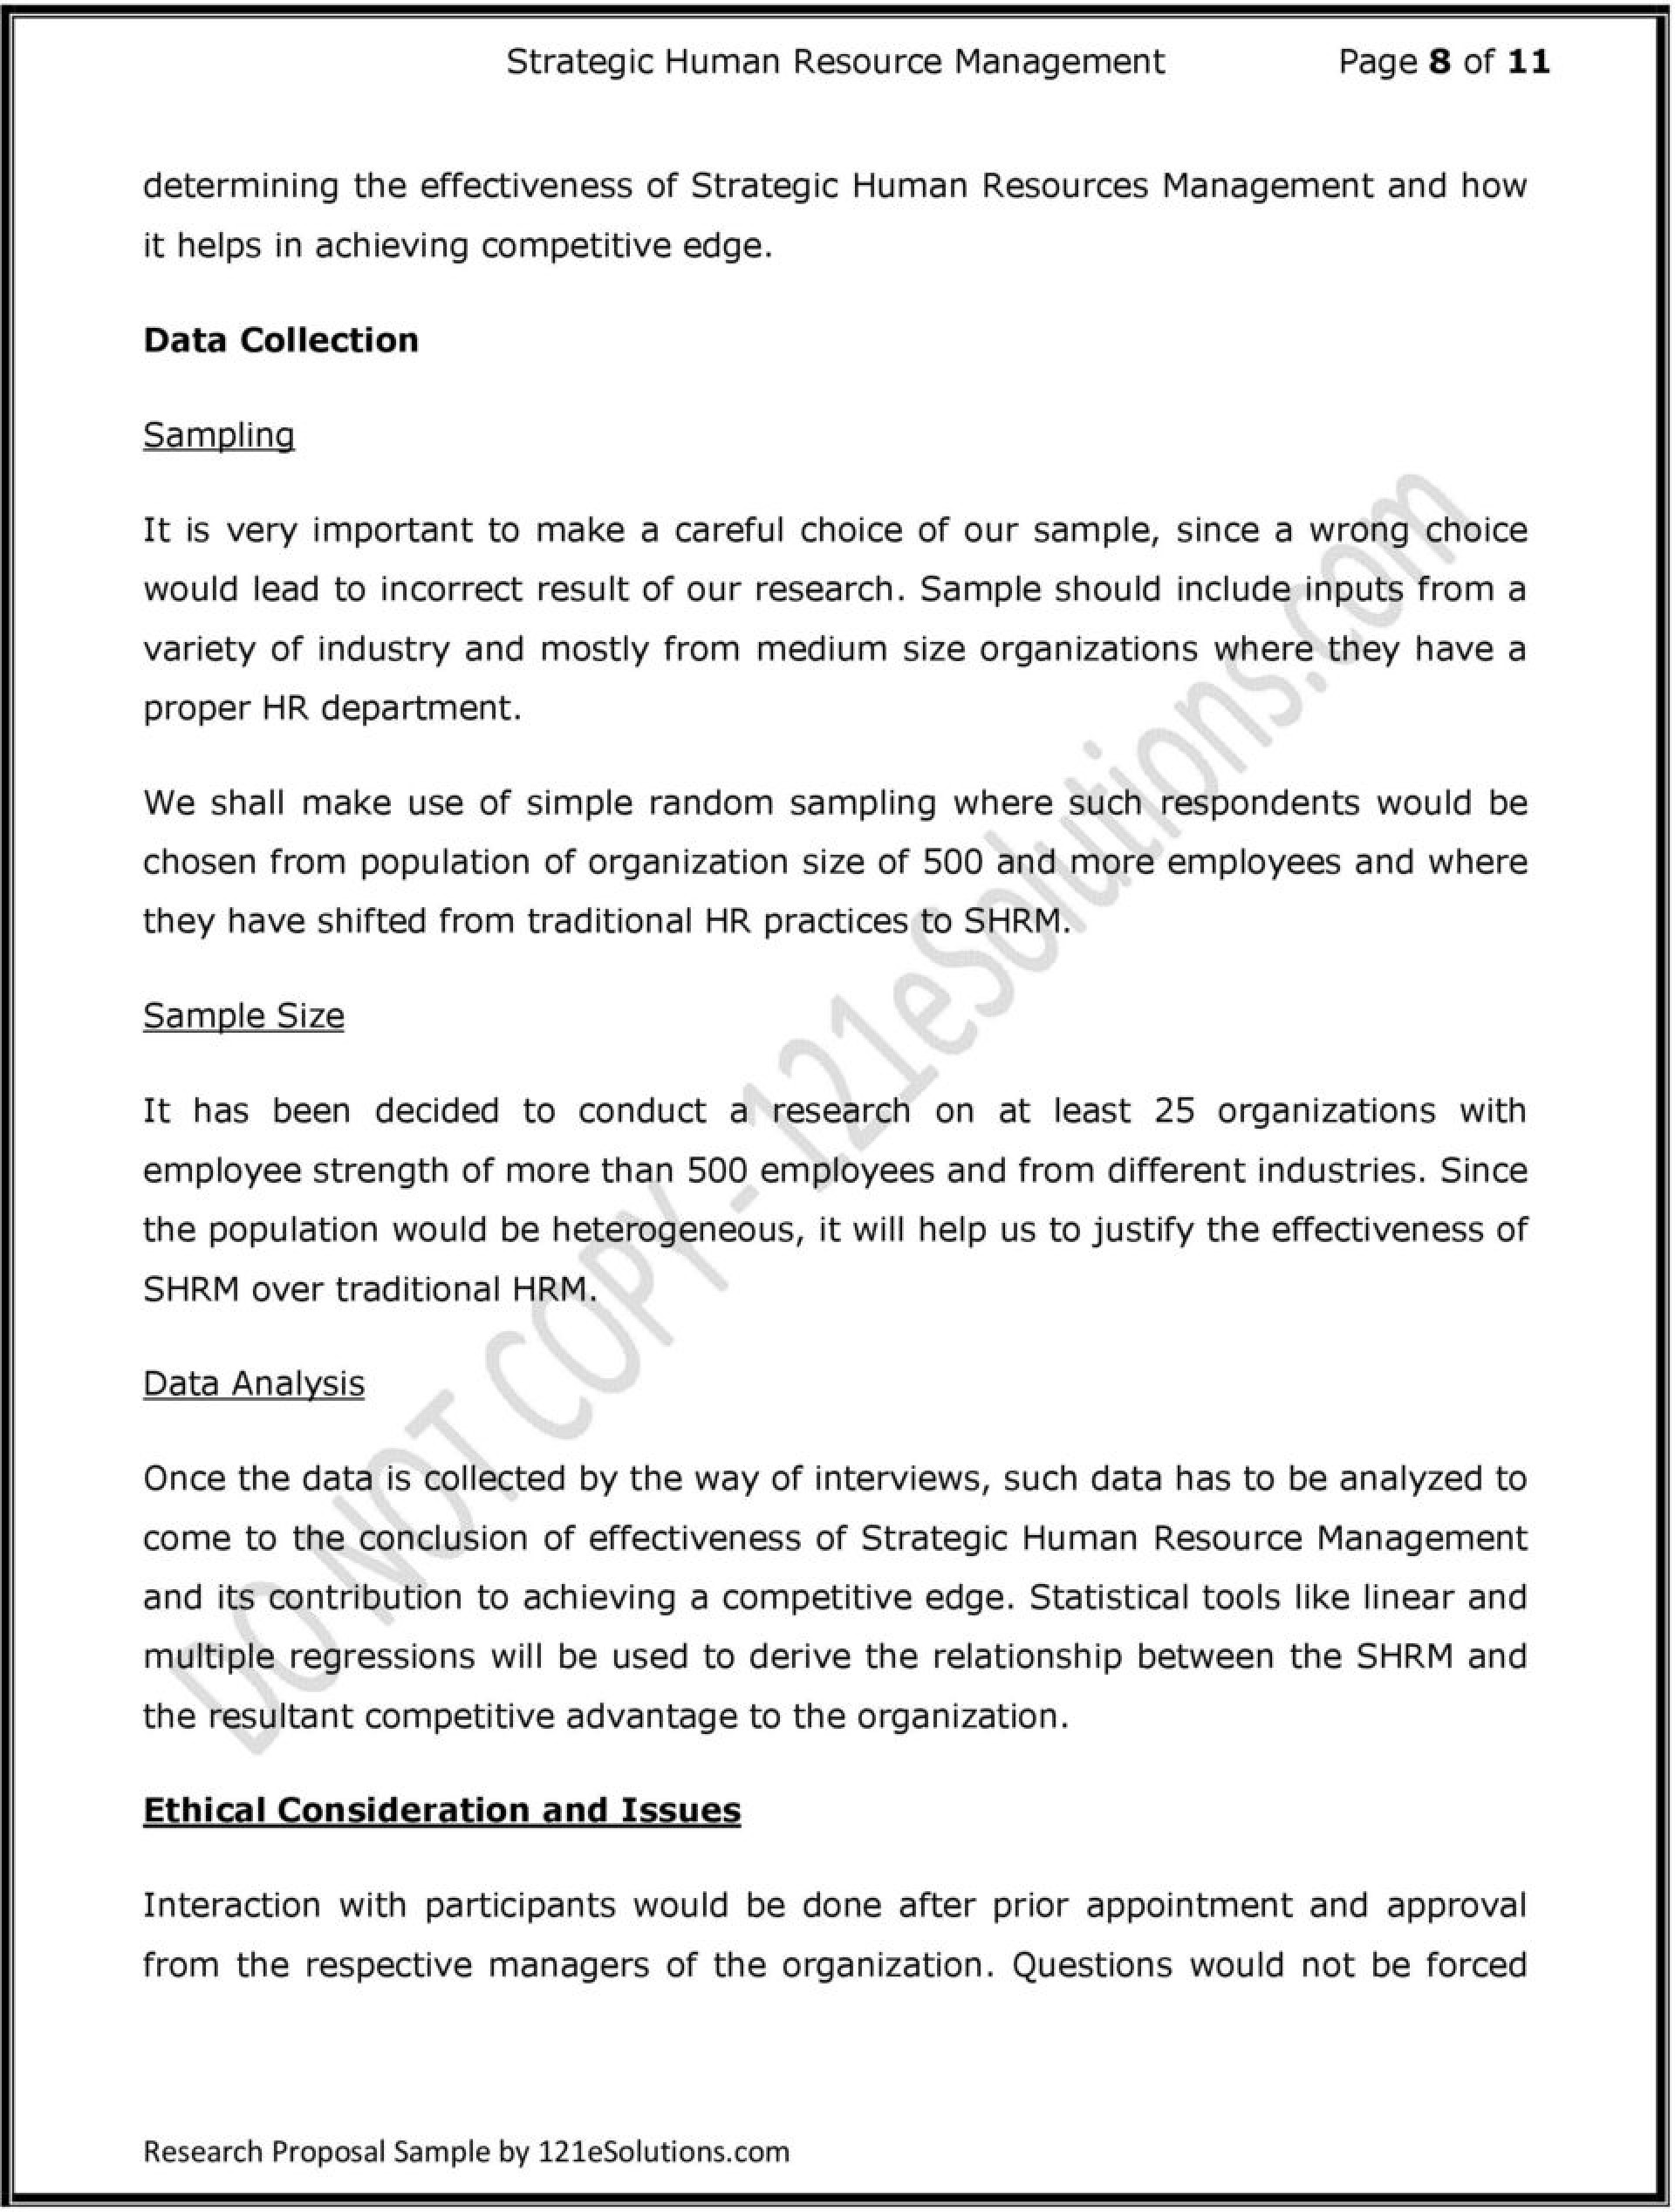 013 Action Research Proposal Paper Examples Page 8 Breathtaking Sample Papers 1920